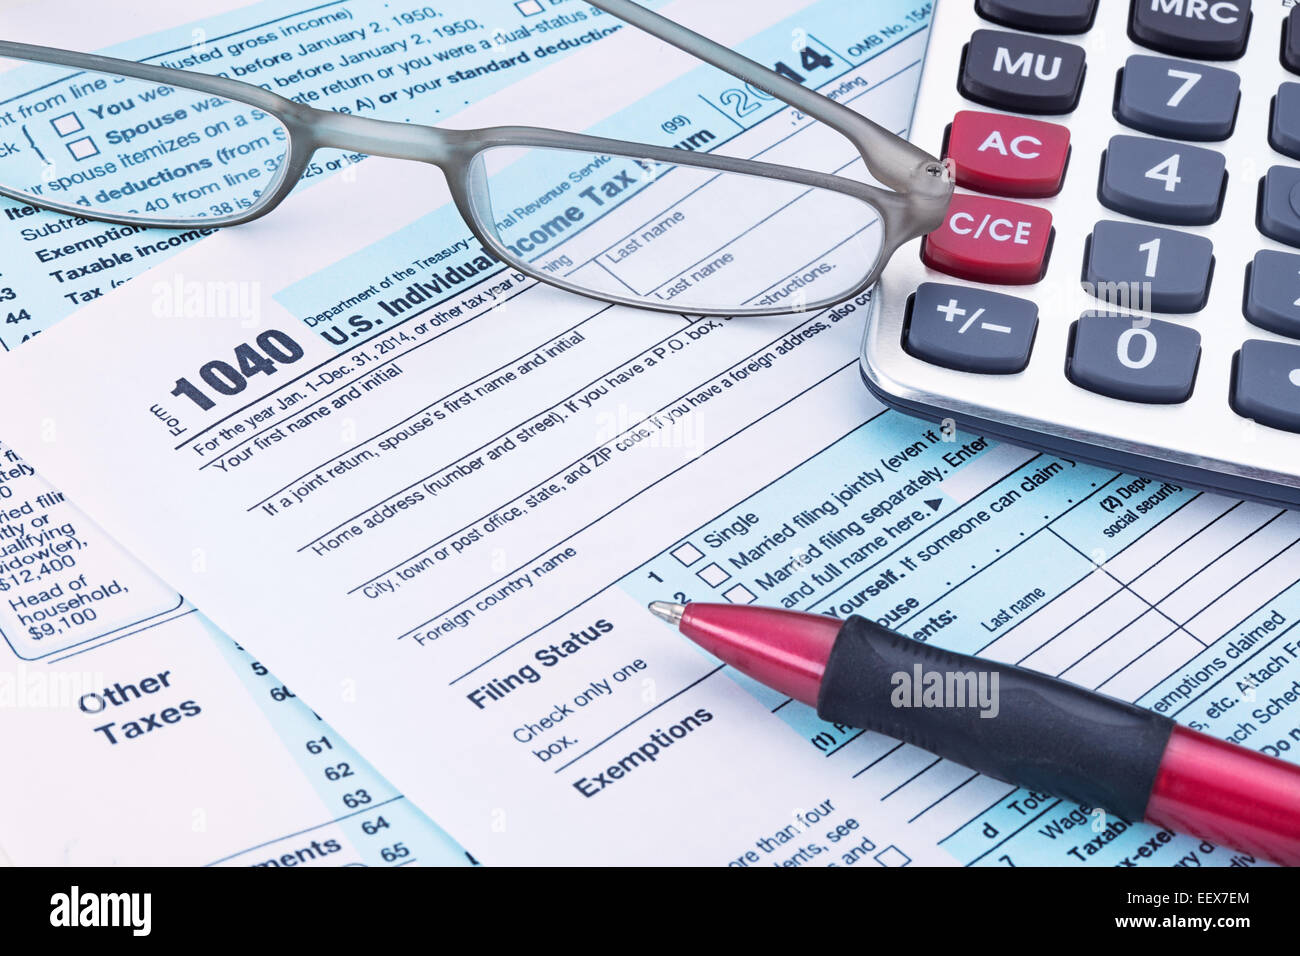 2014 irs form 1040 with calculator and pen stock photo royalty 2014 irs form 1040 with calculator and pen falaconquin